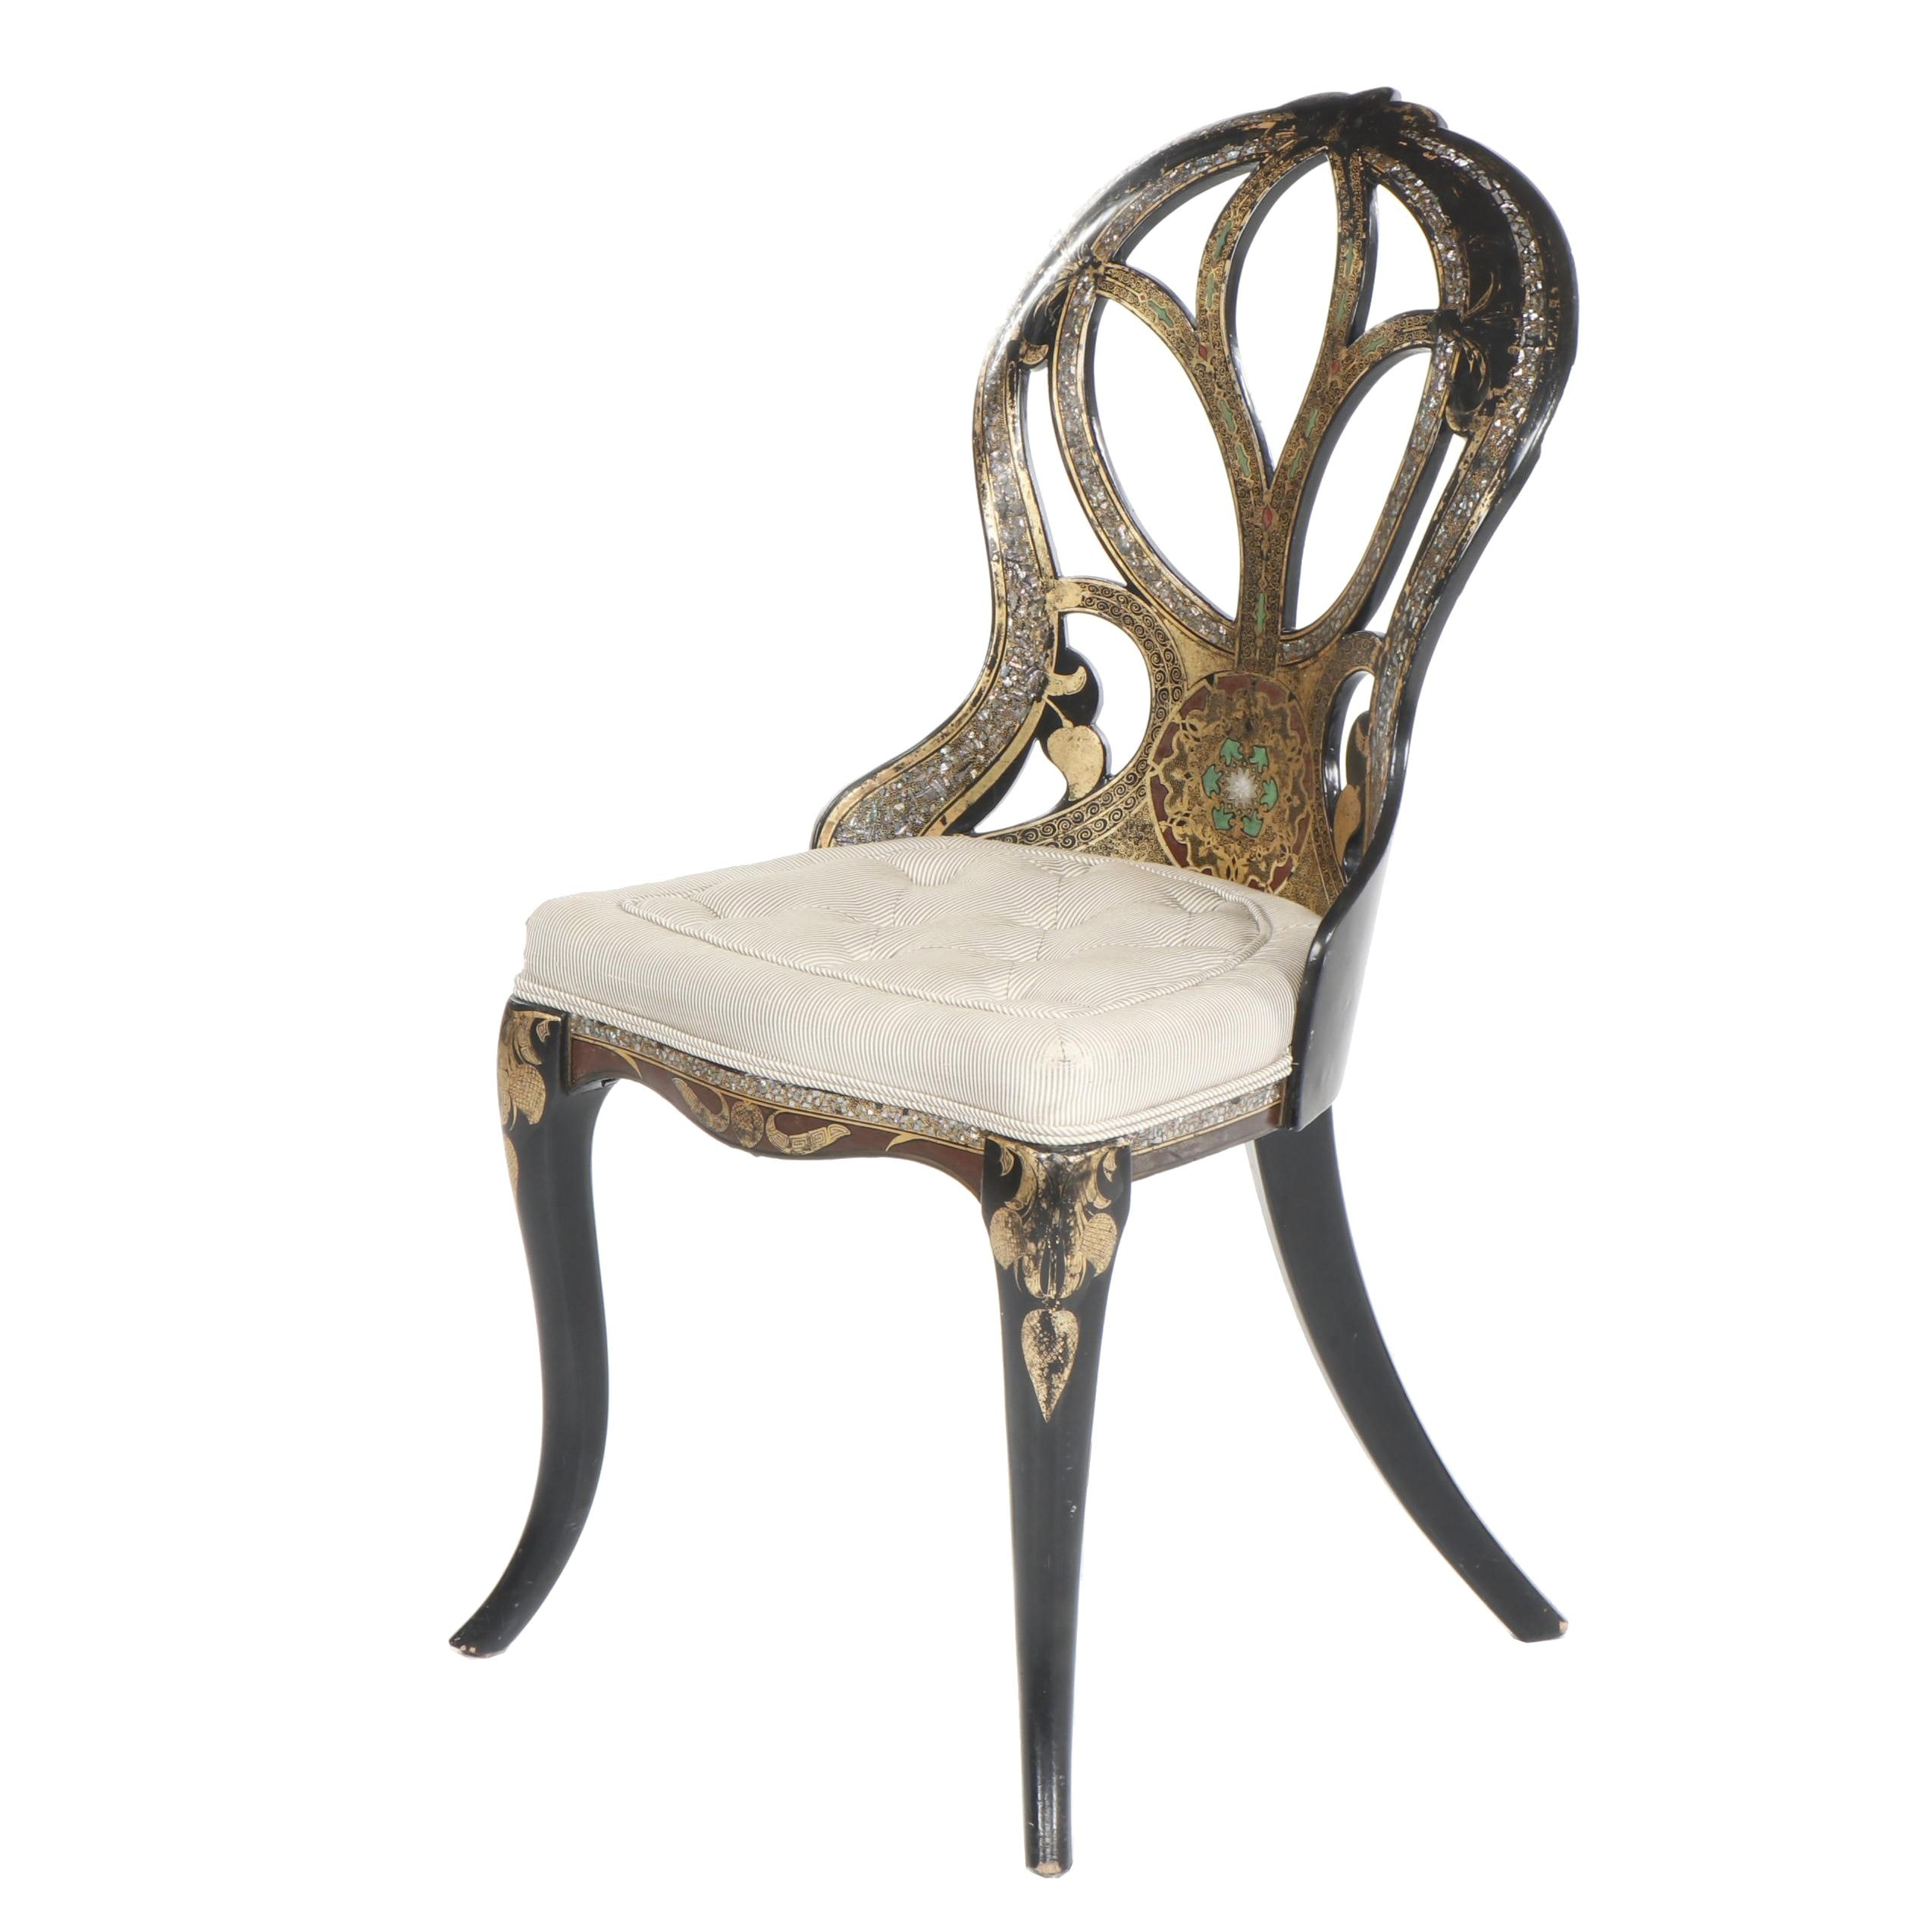 Rococo Revival Style Side Chair with Intricate Shell Inlay, 20th Century